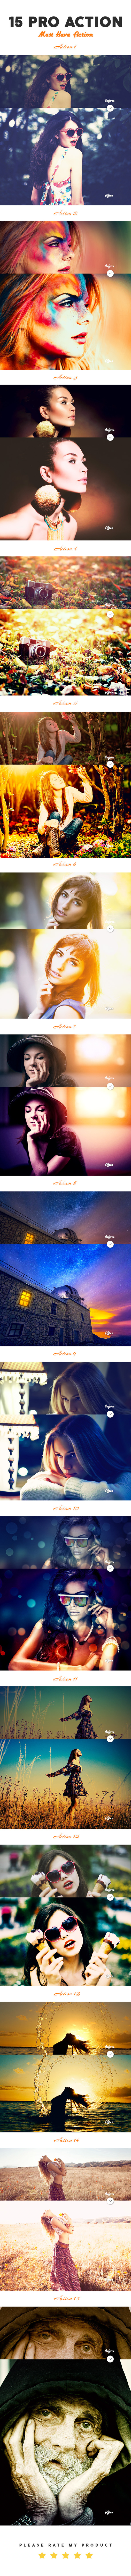 GraphicRiver 15 Pro Action 11166053